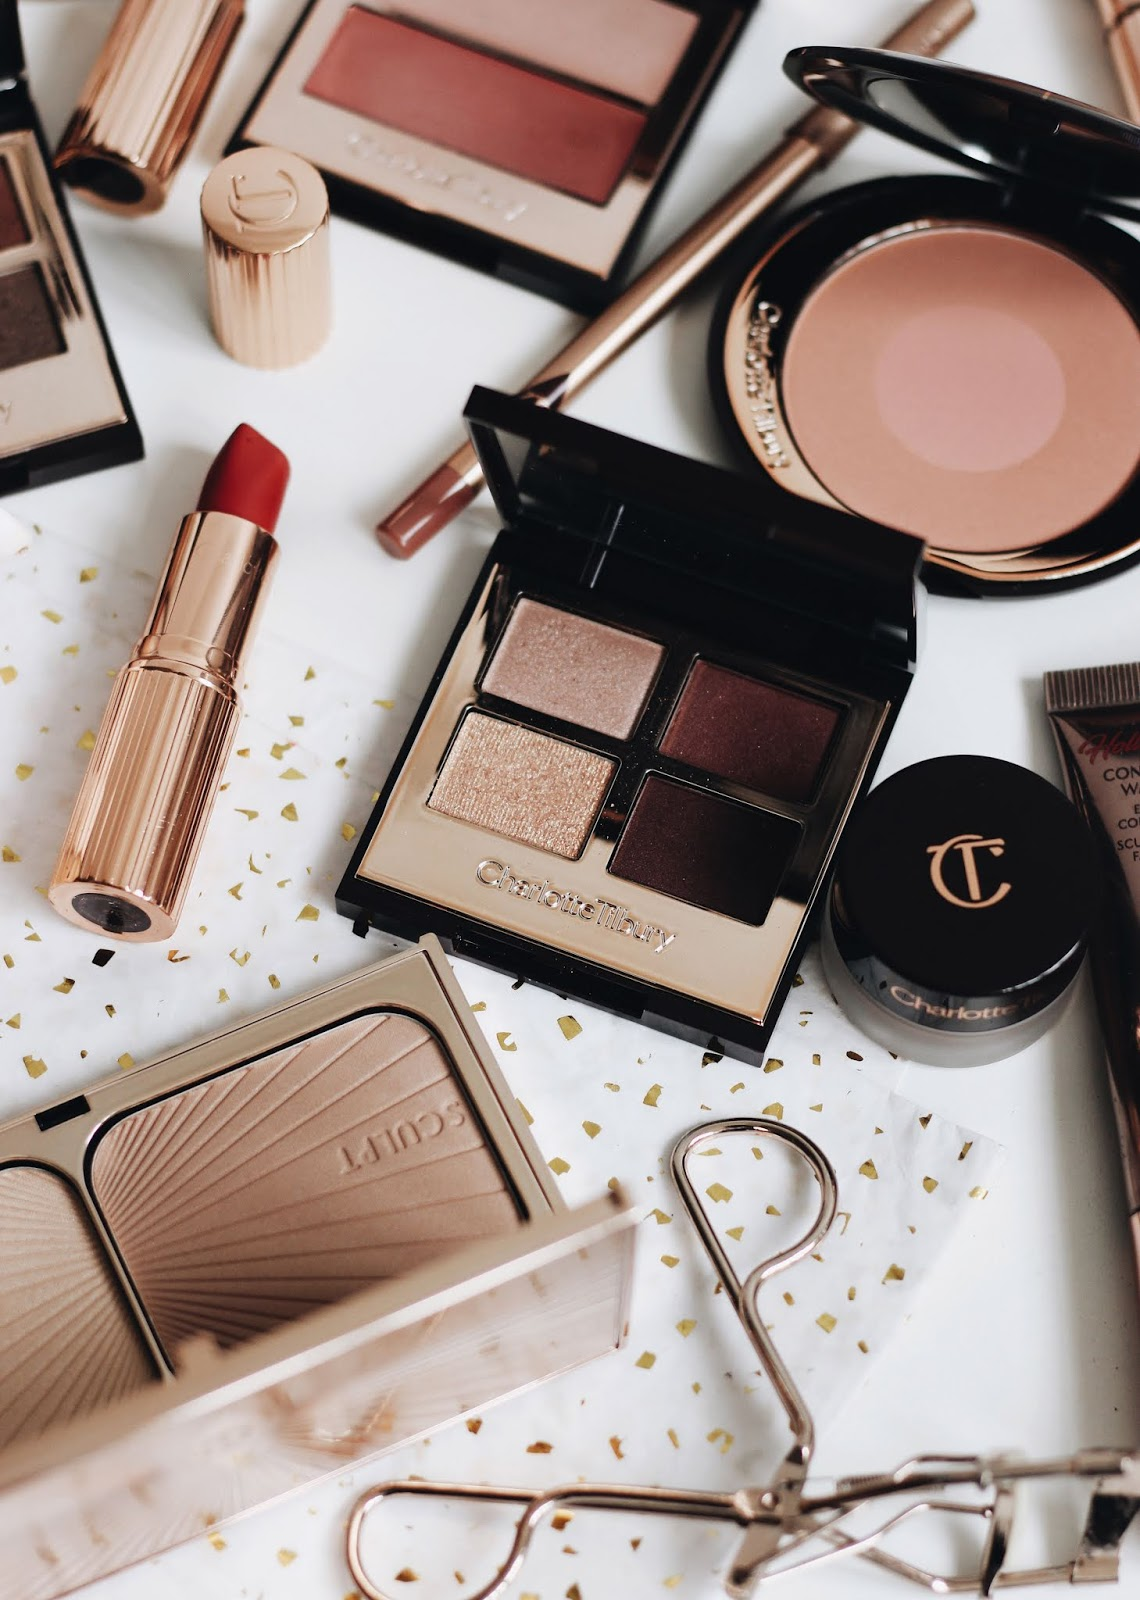 Charlotte Tilbury Makeup and Skincare Collection